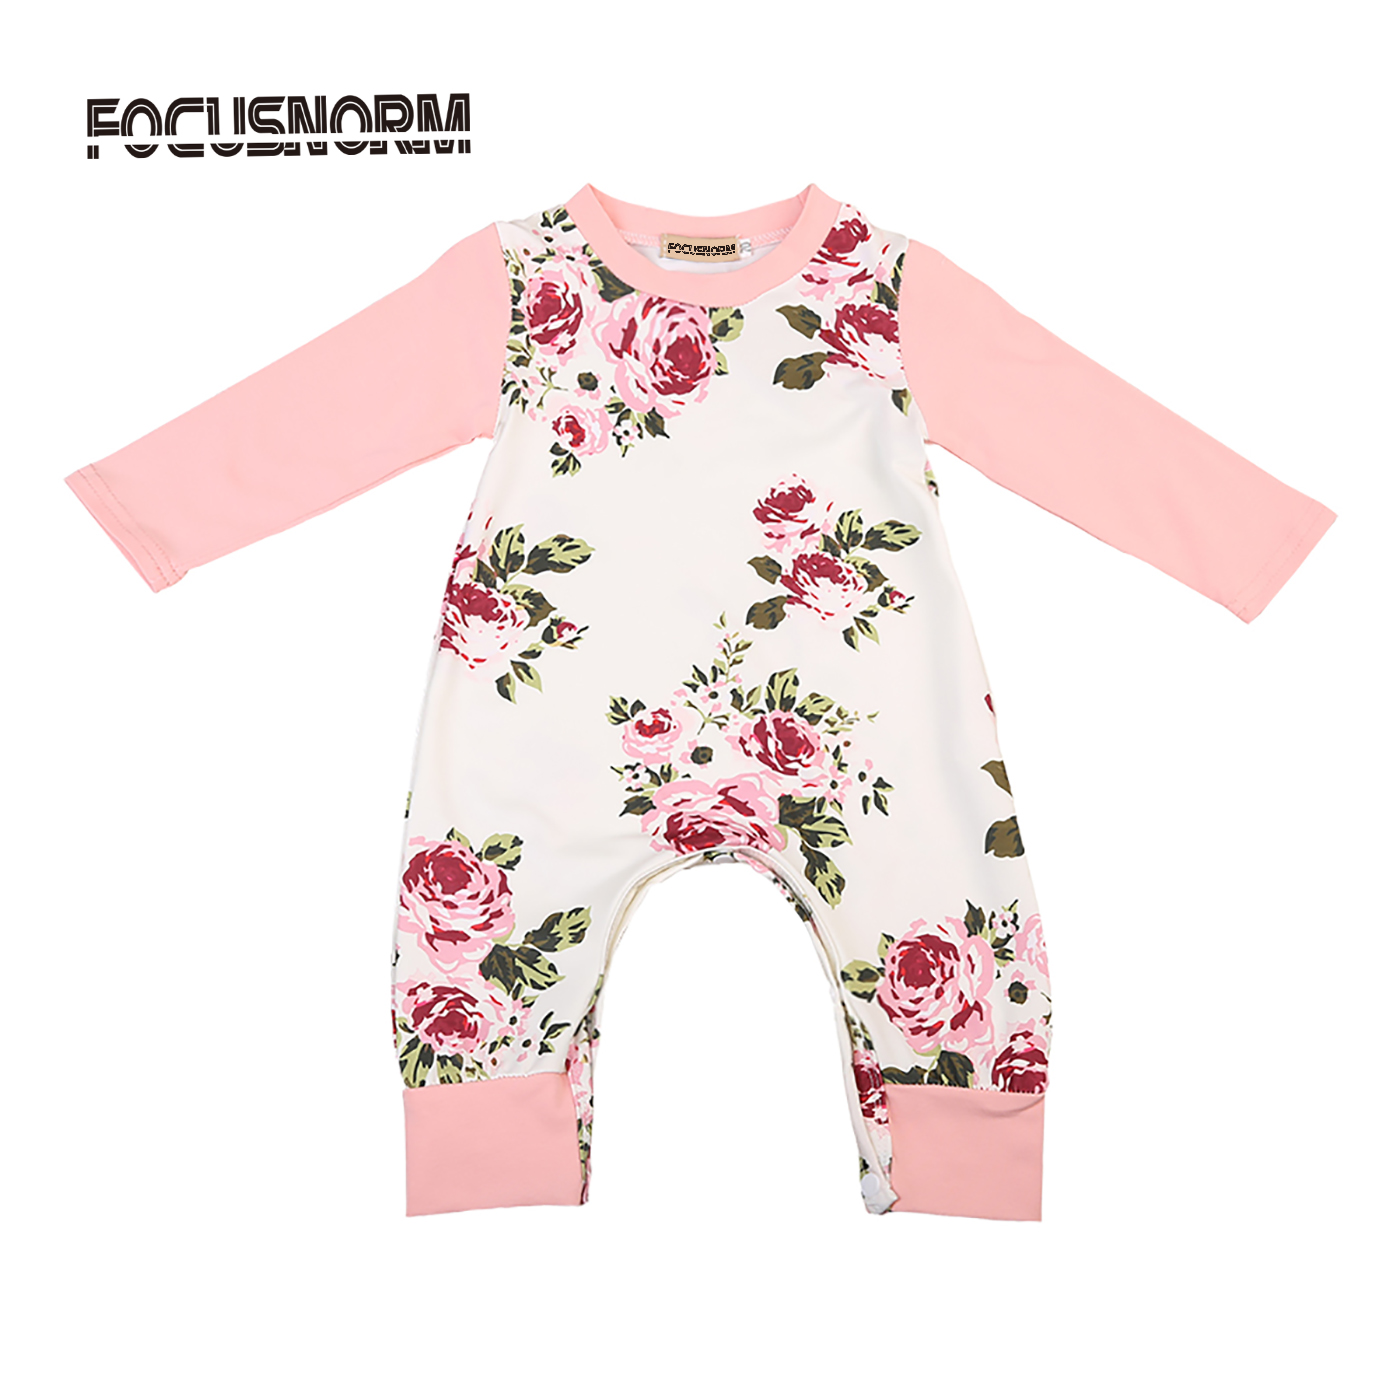 Classic Floral Romper Jumpsuit Cotton Newborn Kids Baby Girls Playsuit Clothes Outfits 0-24M